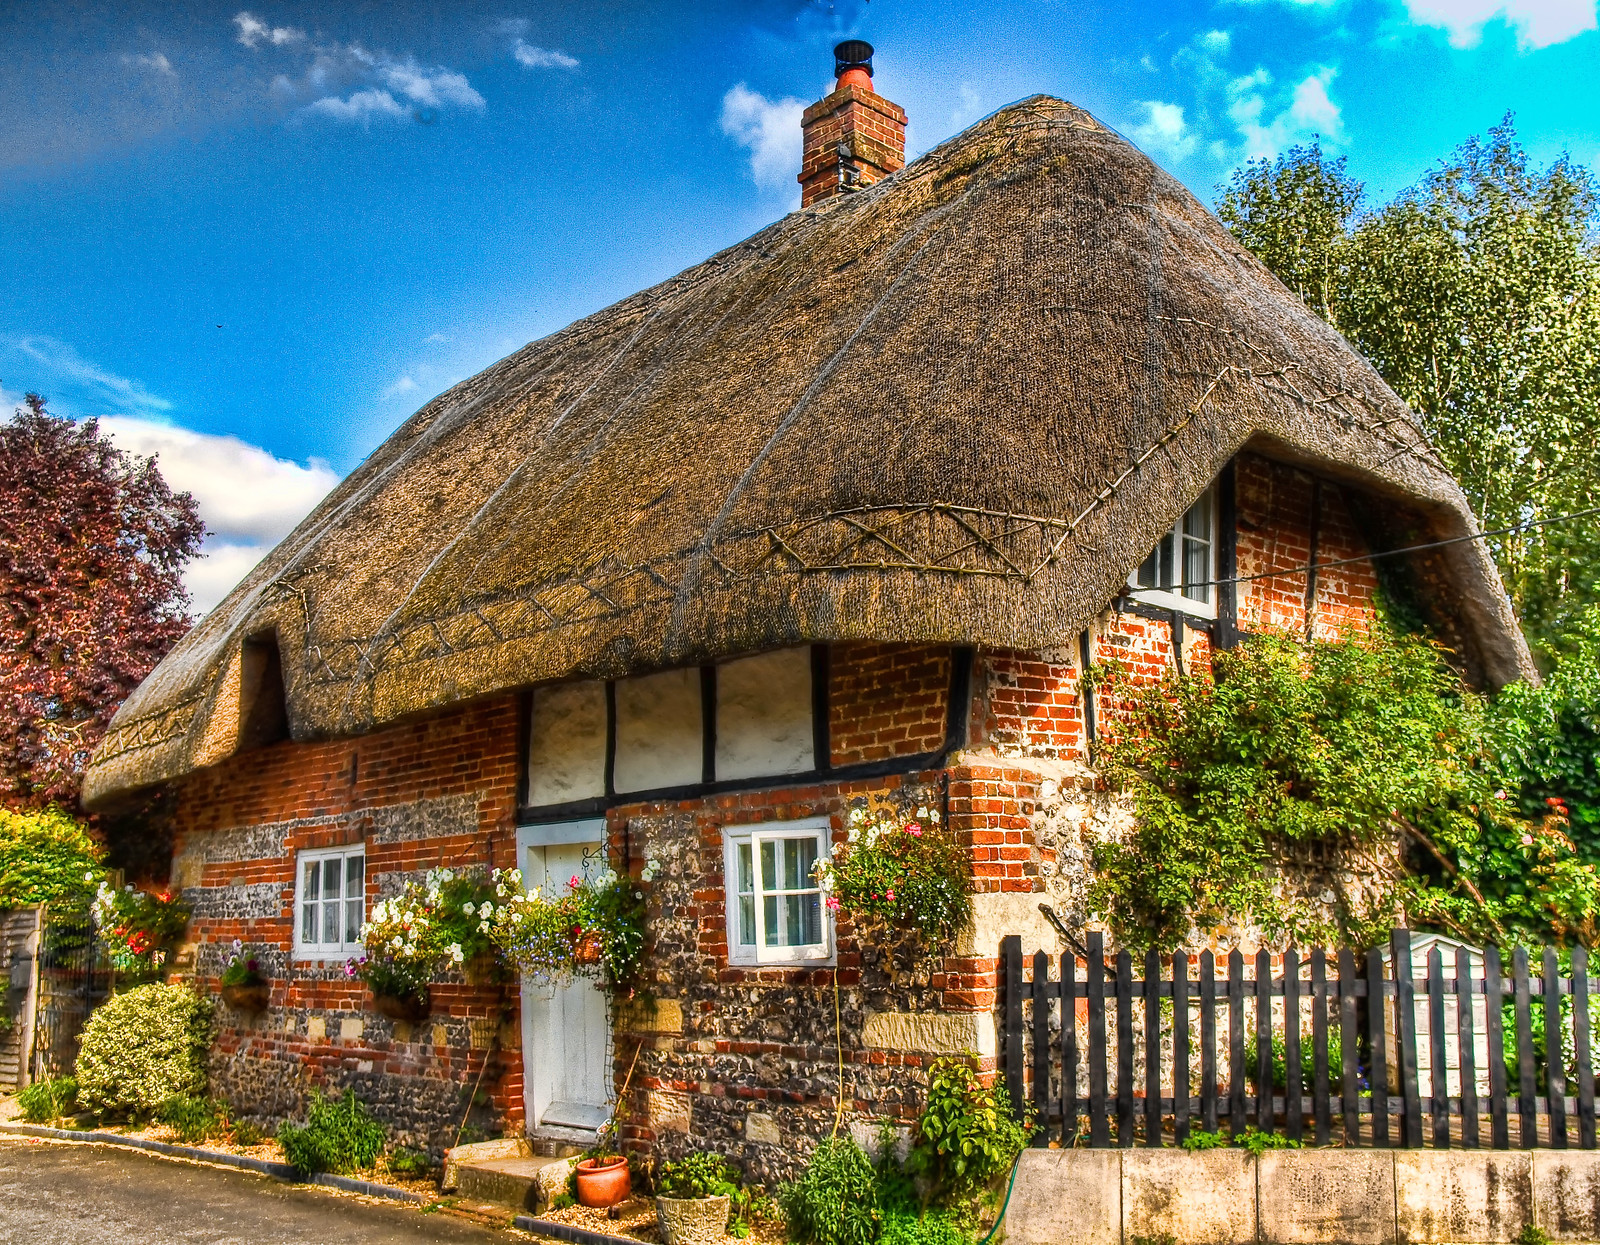 A Thatched Cottage In Nether Wallop Hampshire Credit Anguskirk